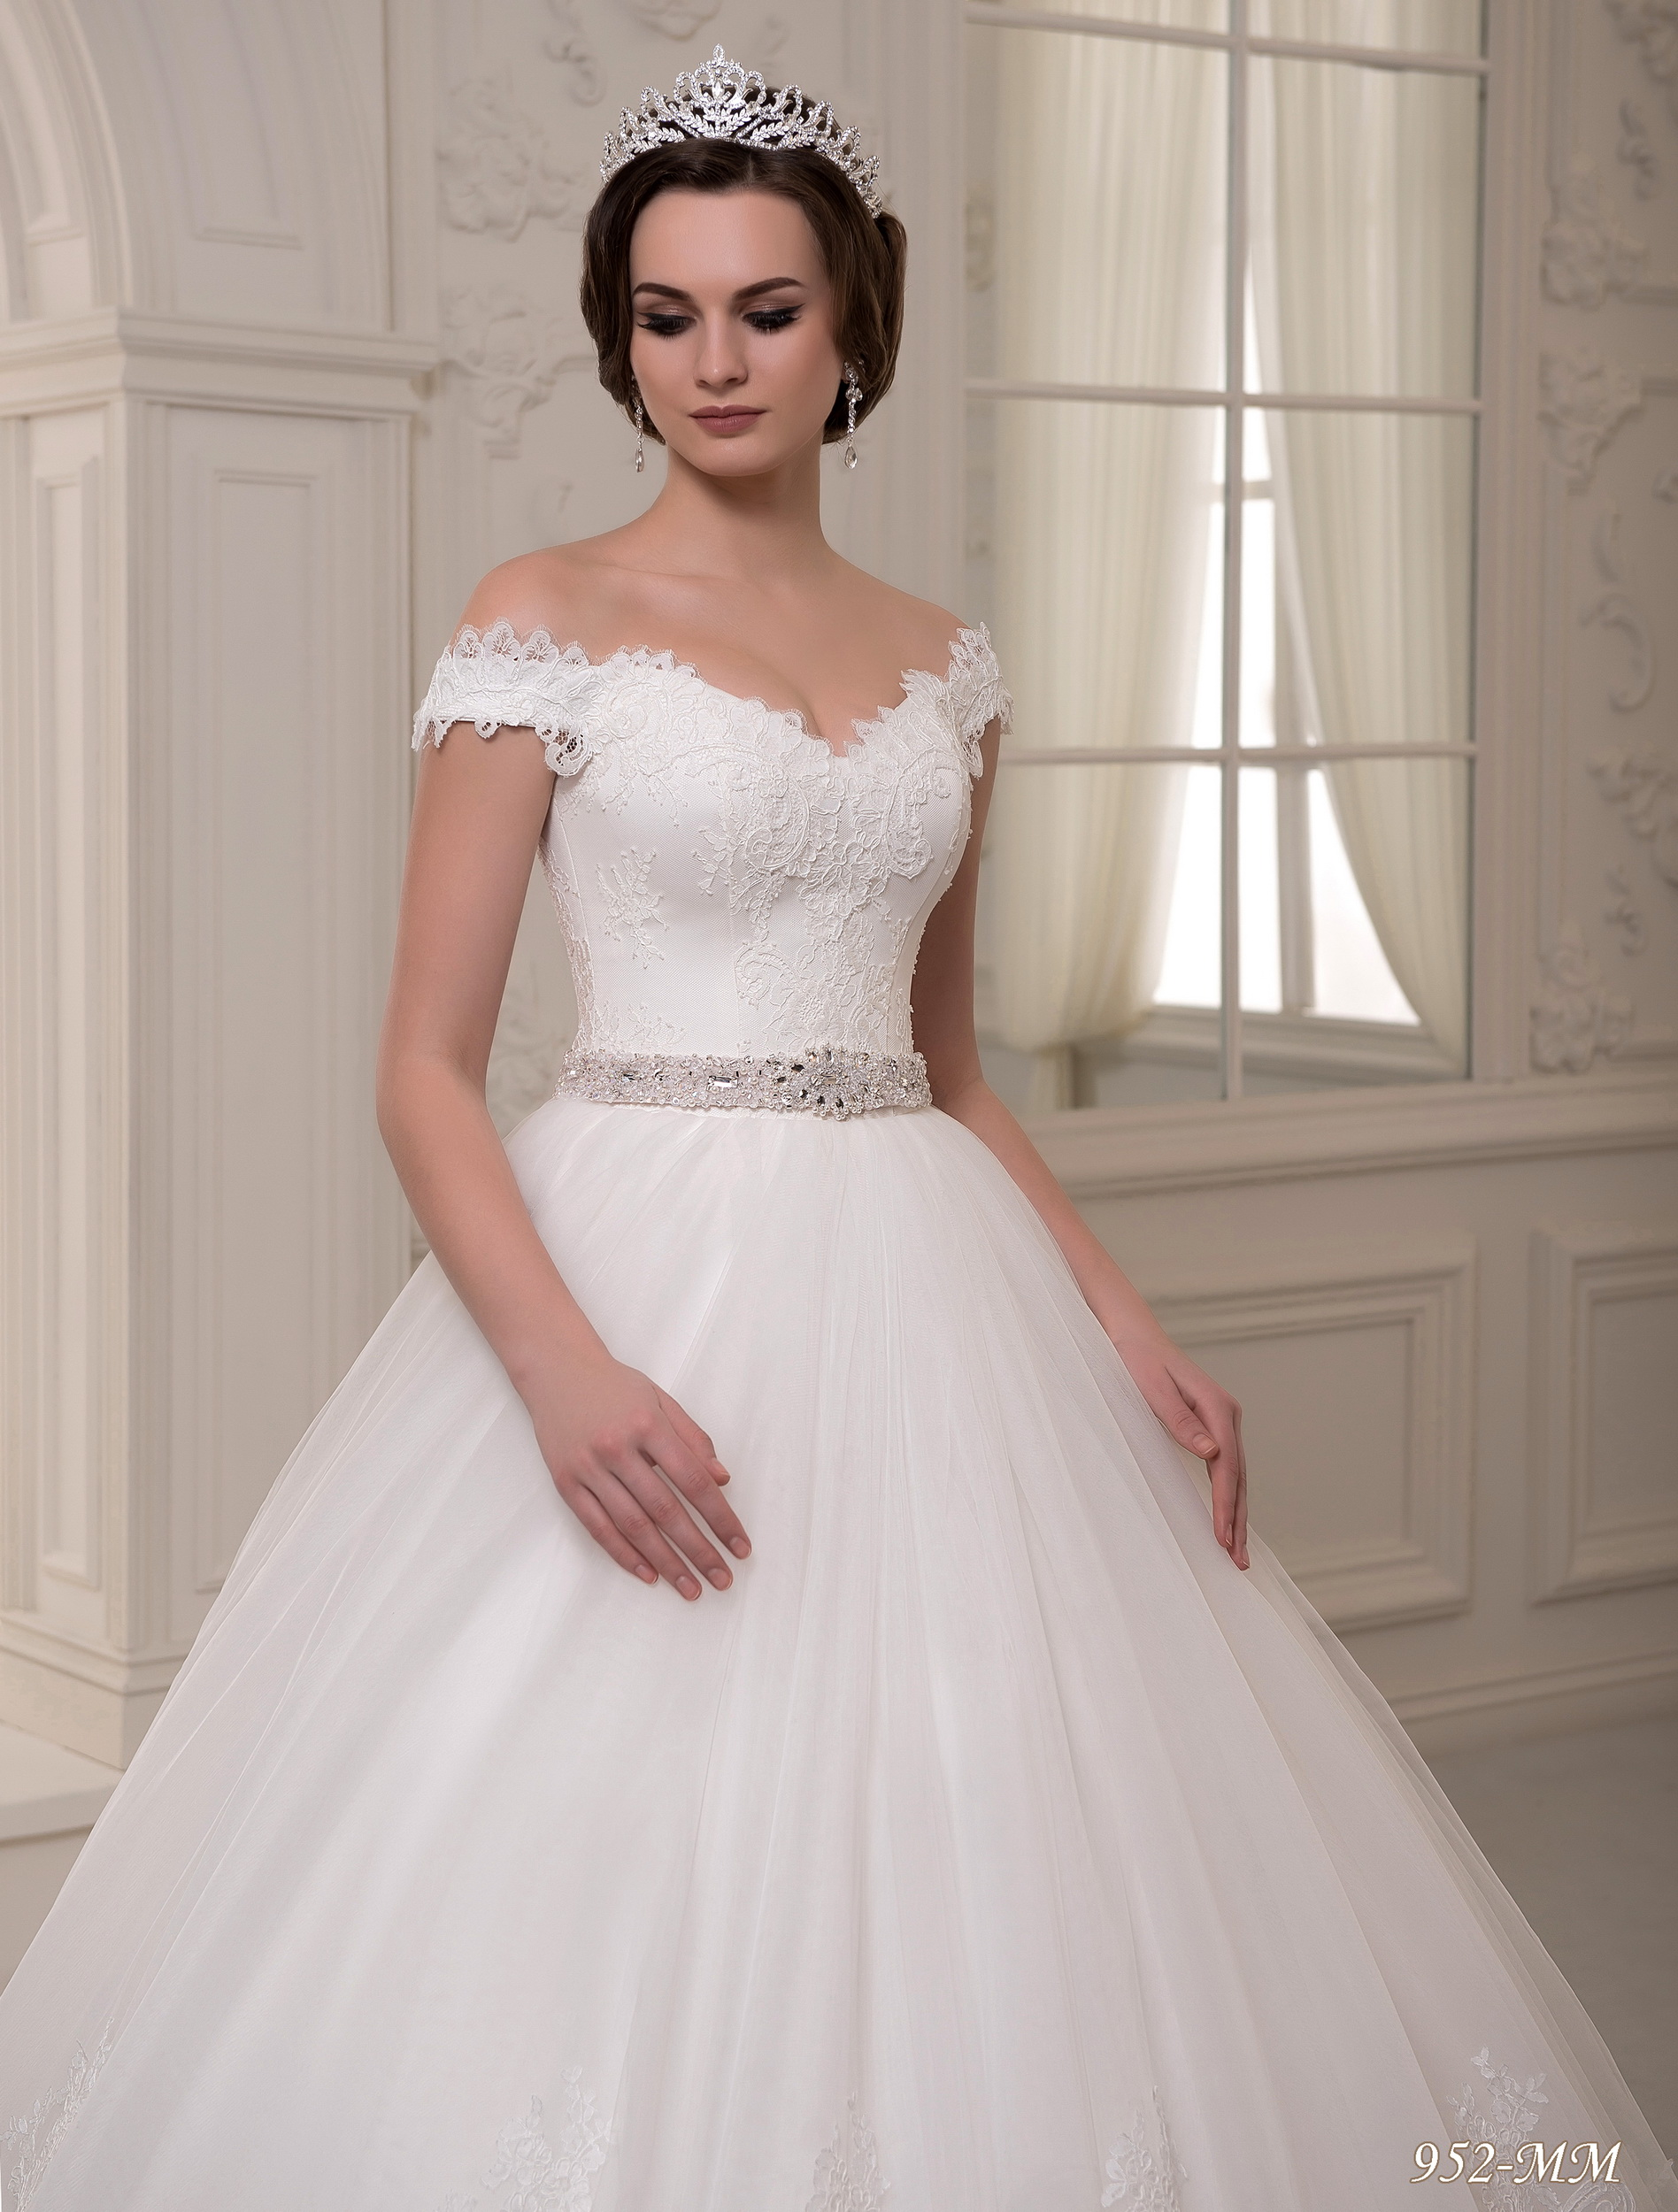 952-MM | Buy wedding dresses wholesale from Pentelei